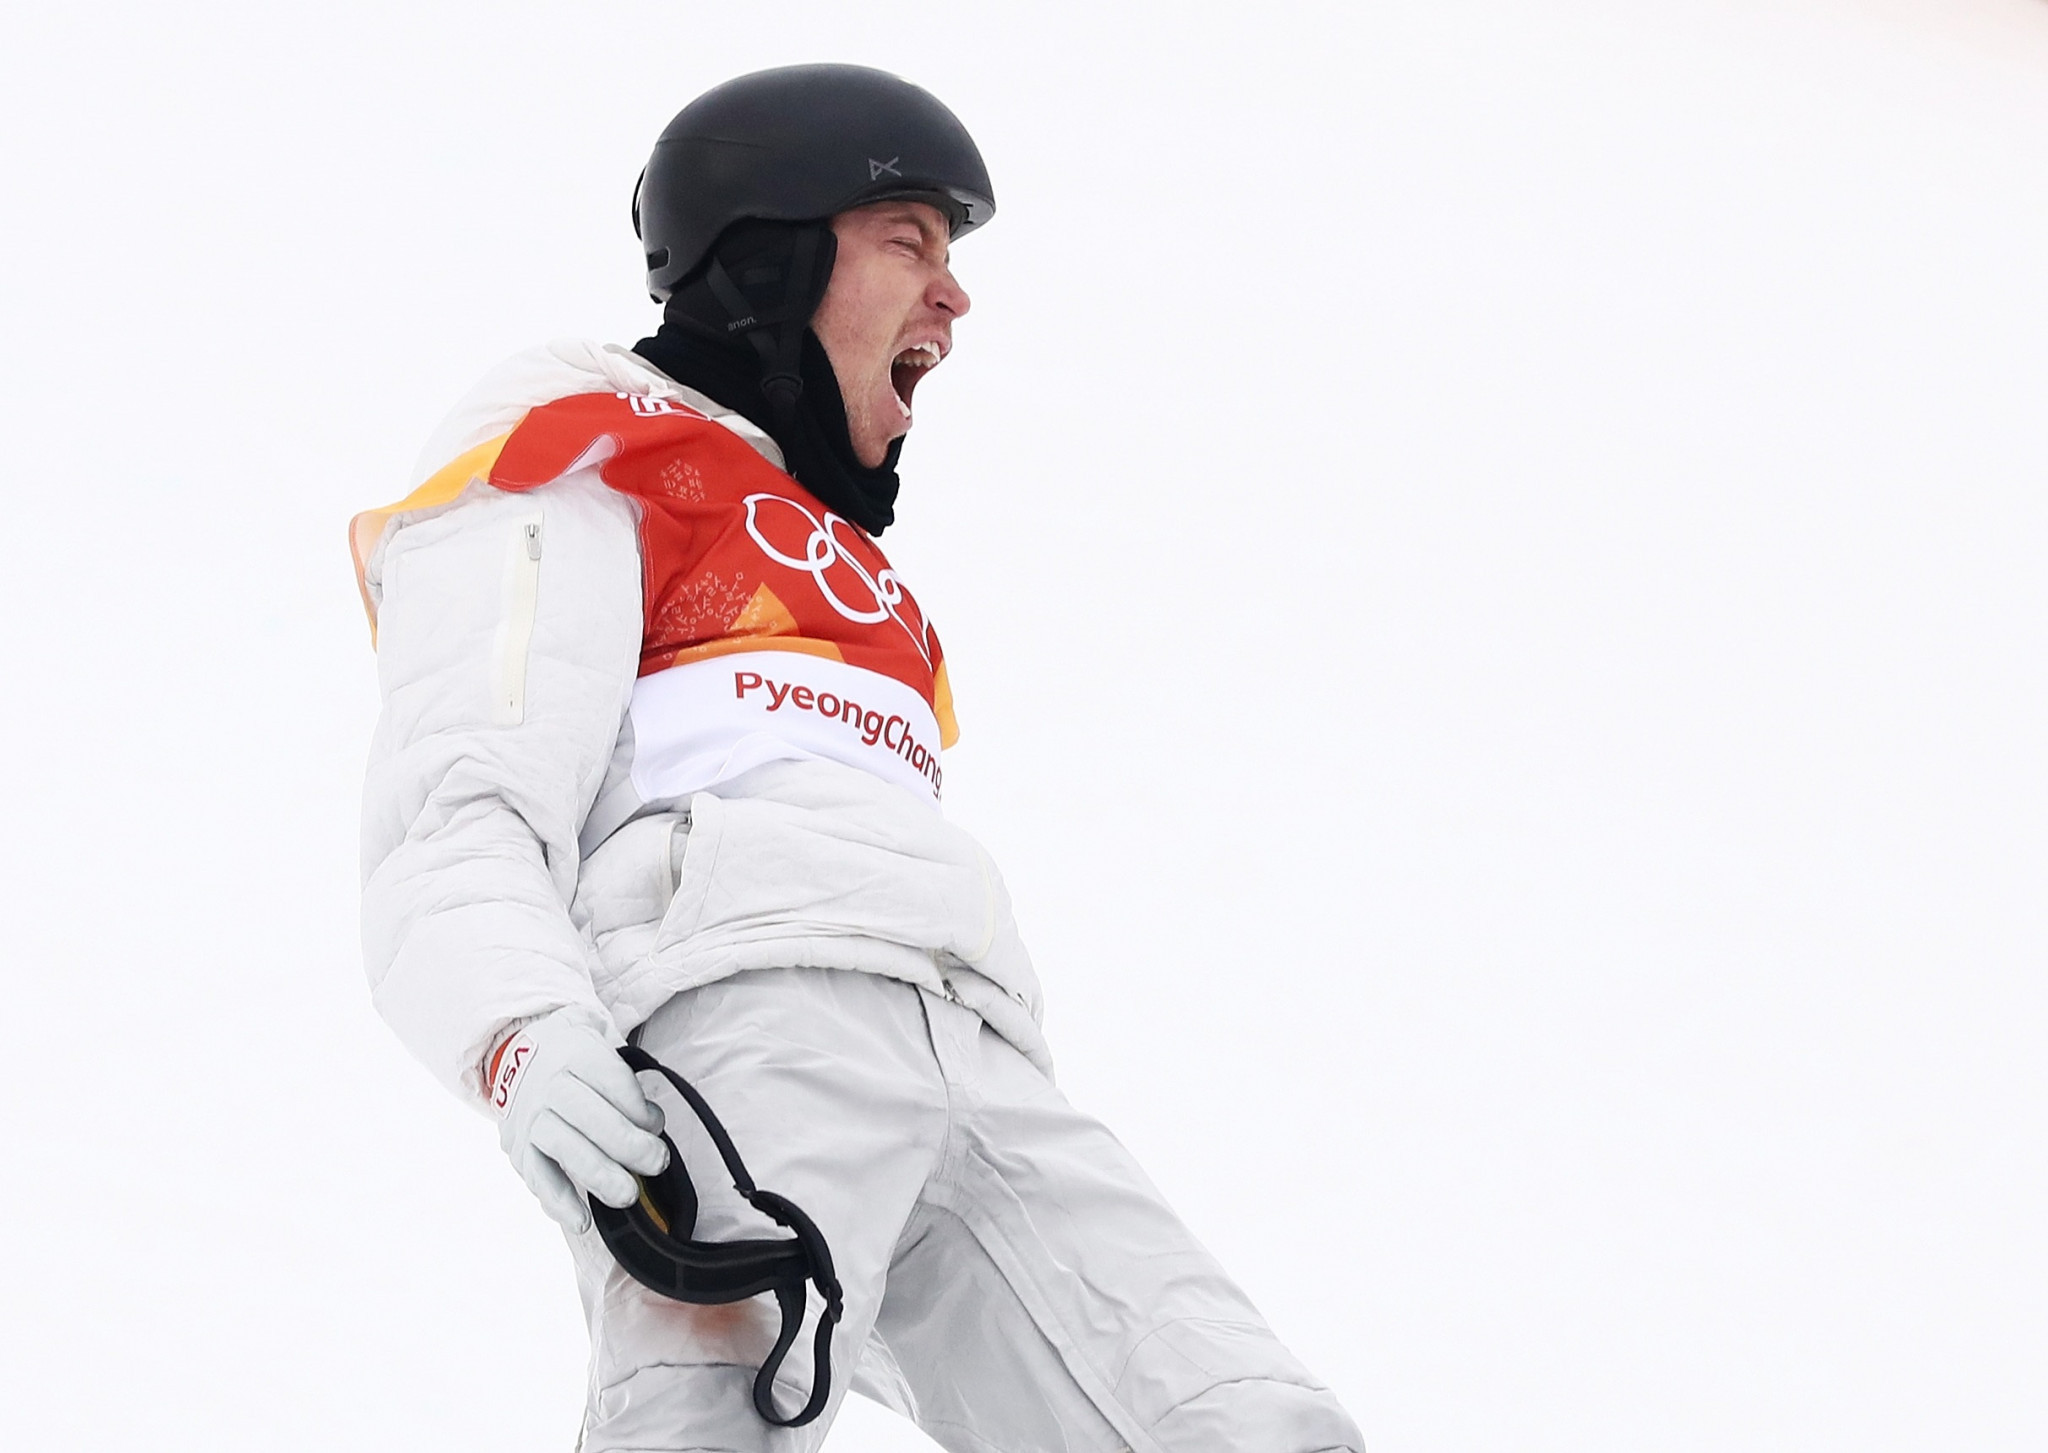 Shaun White celebrates after holding his nerve to win gold ©Getty Images